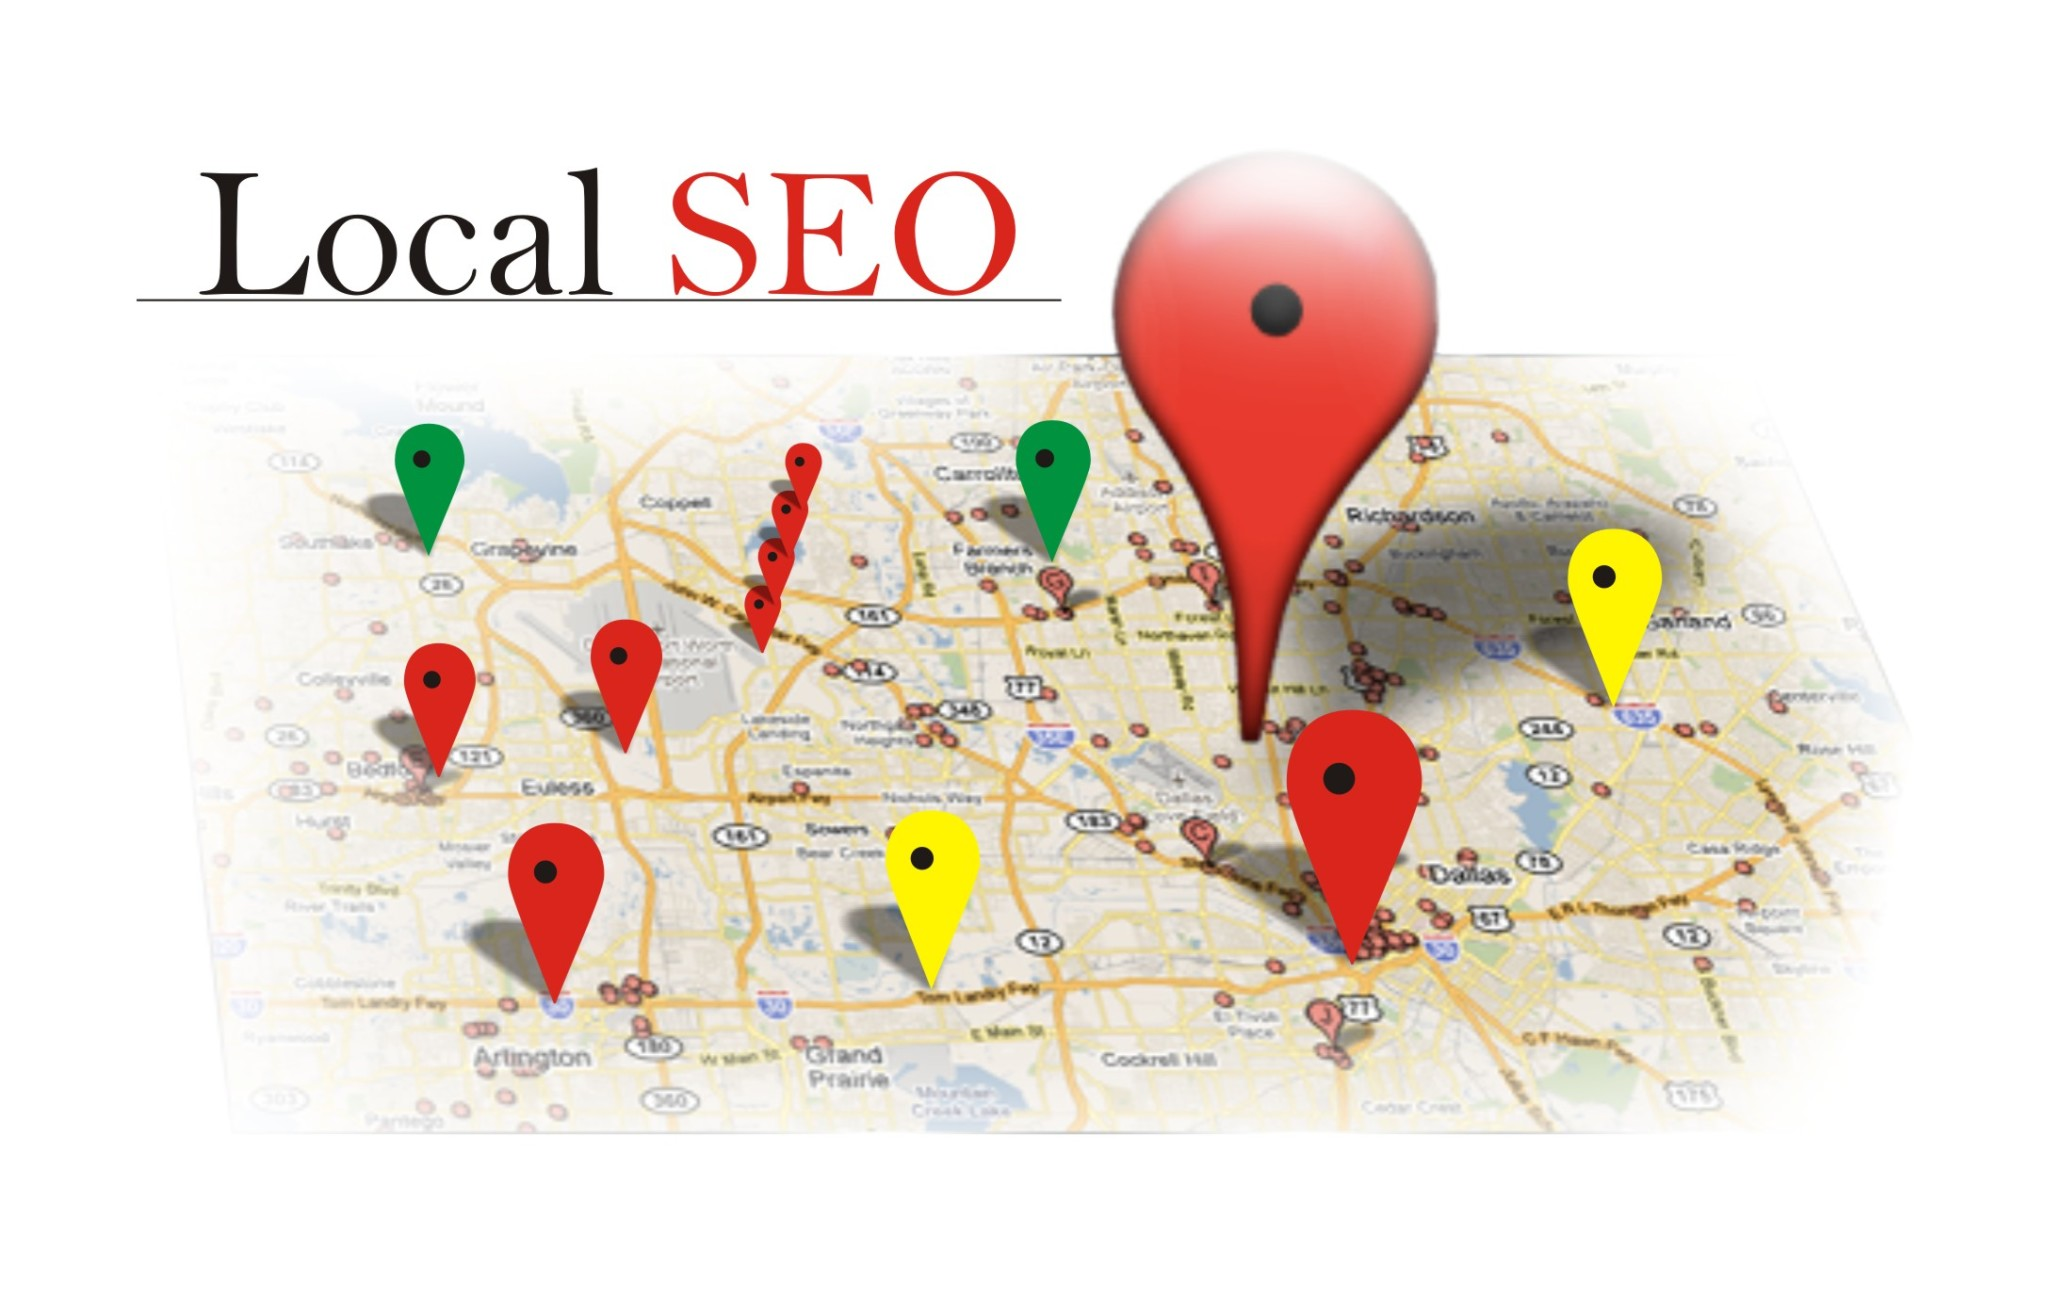 local seo - How Can Local SEO Boost Your Local Business?